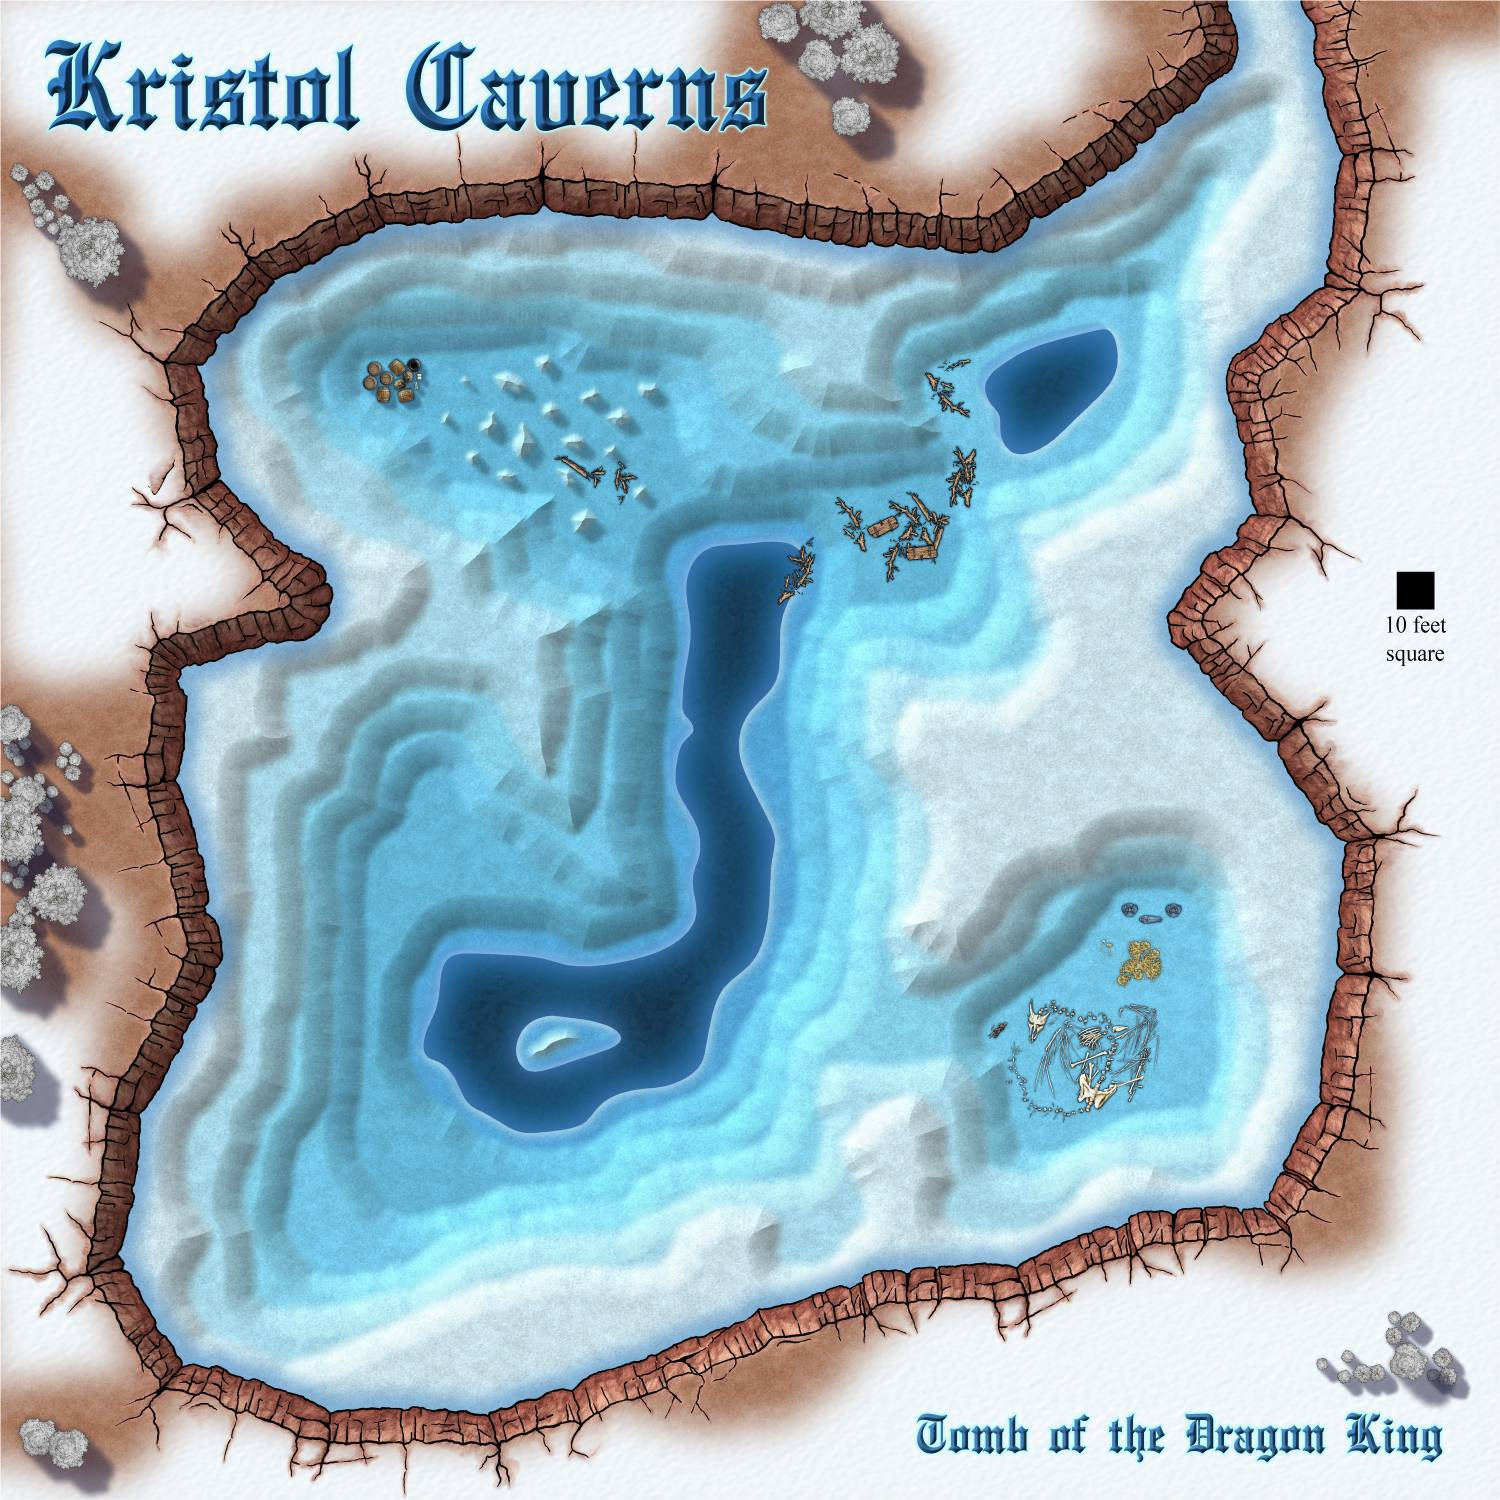 13.Loopysue-kristol caverns.jpg